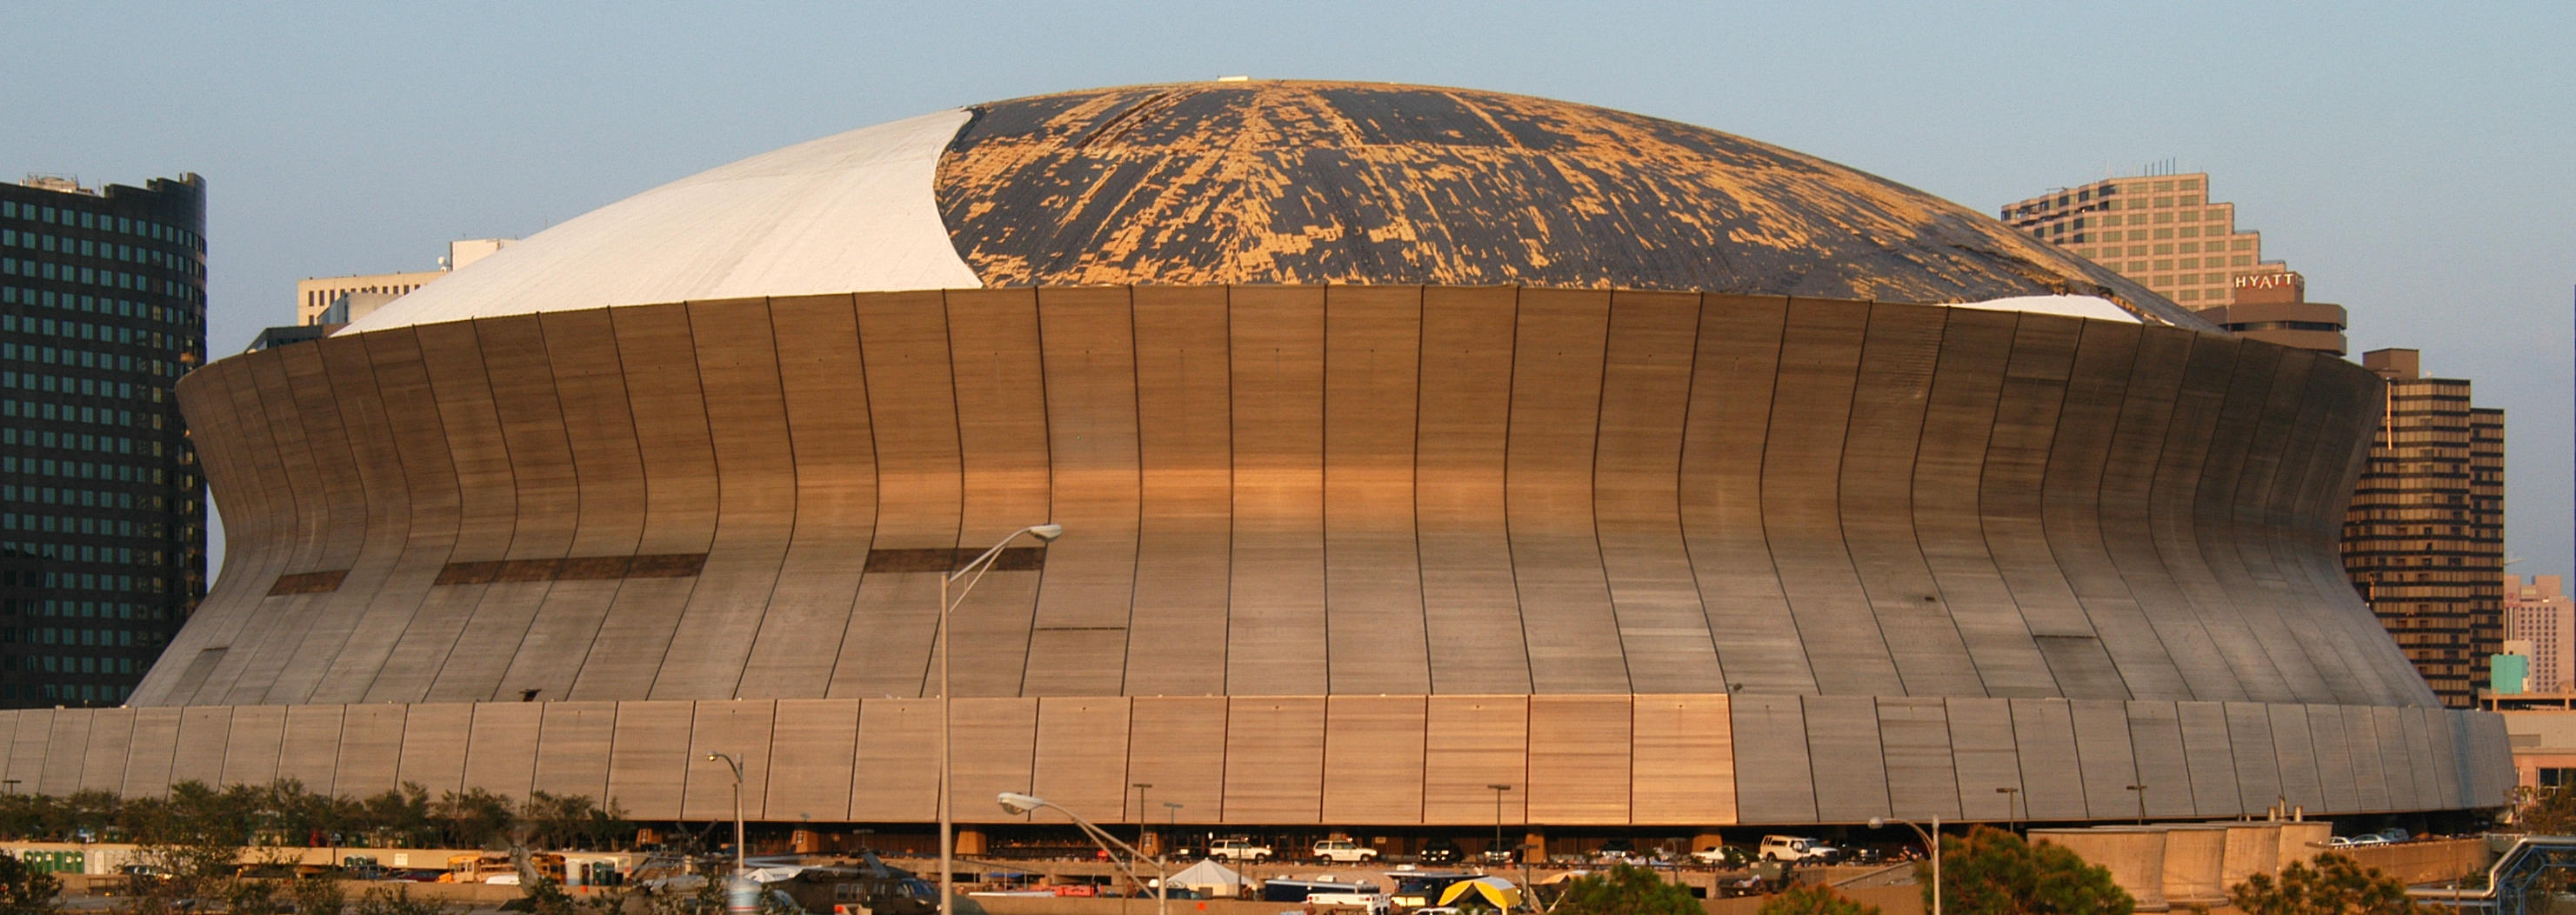 file superdome roof damage jpg wikimedia commons new orleans clipart border new orleans clip art borders